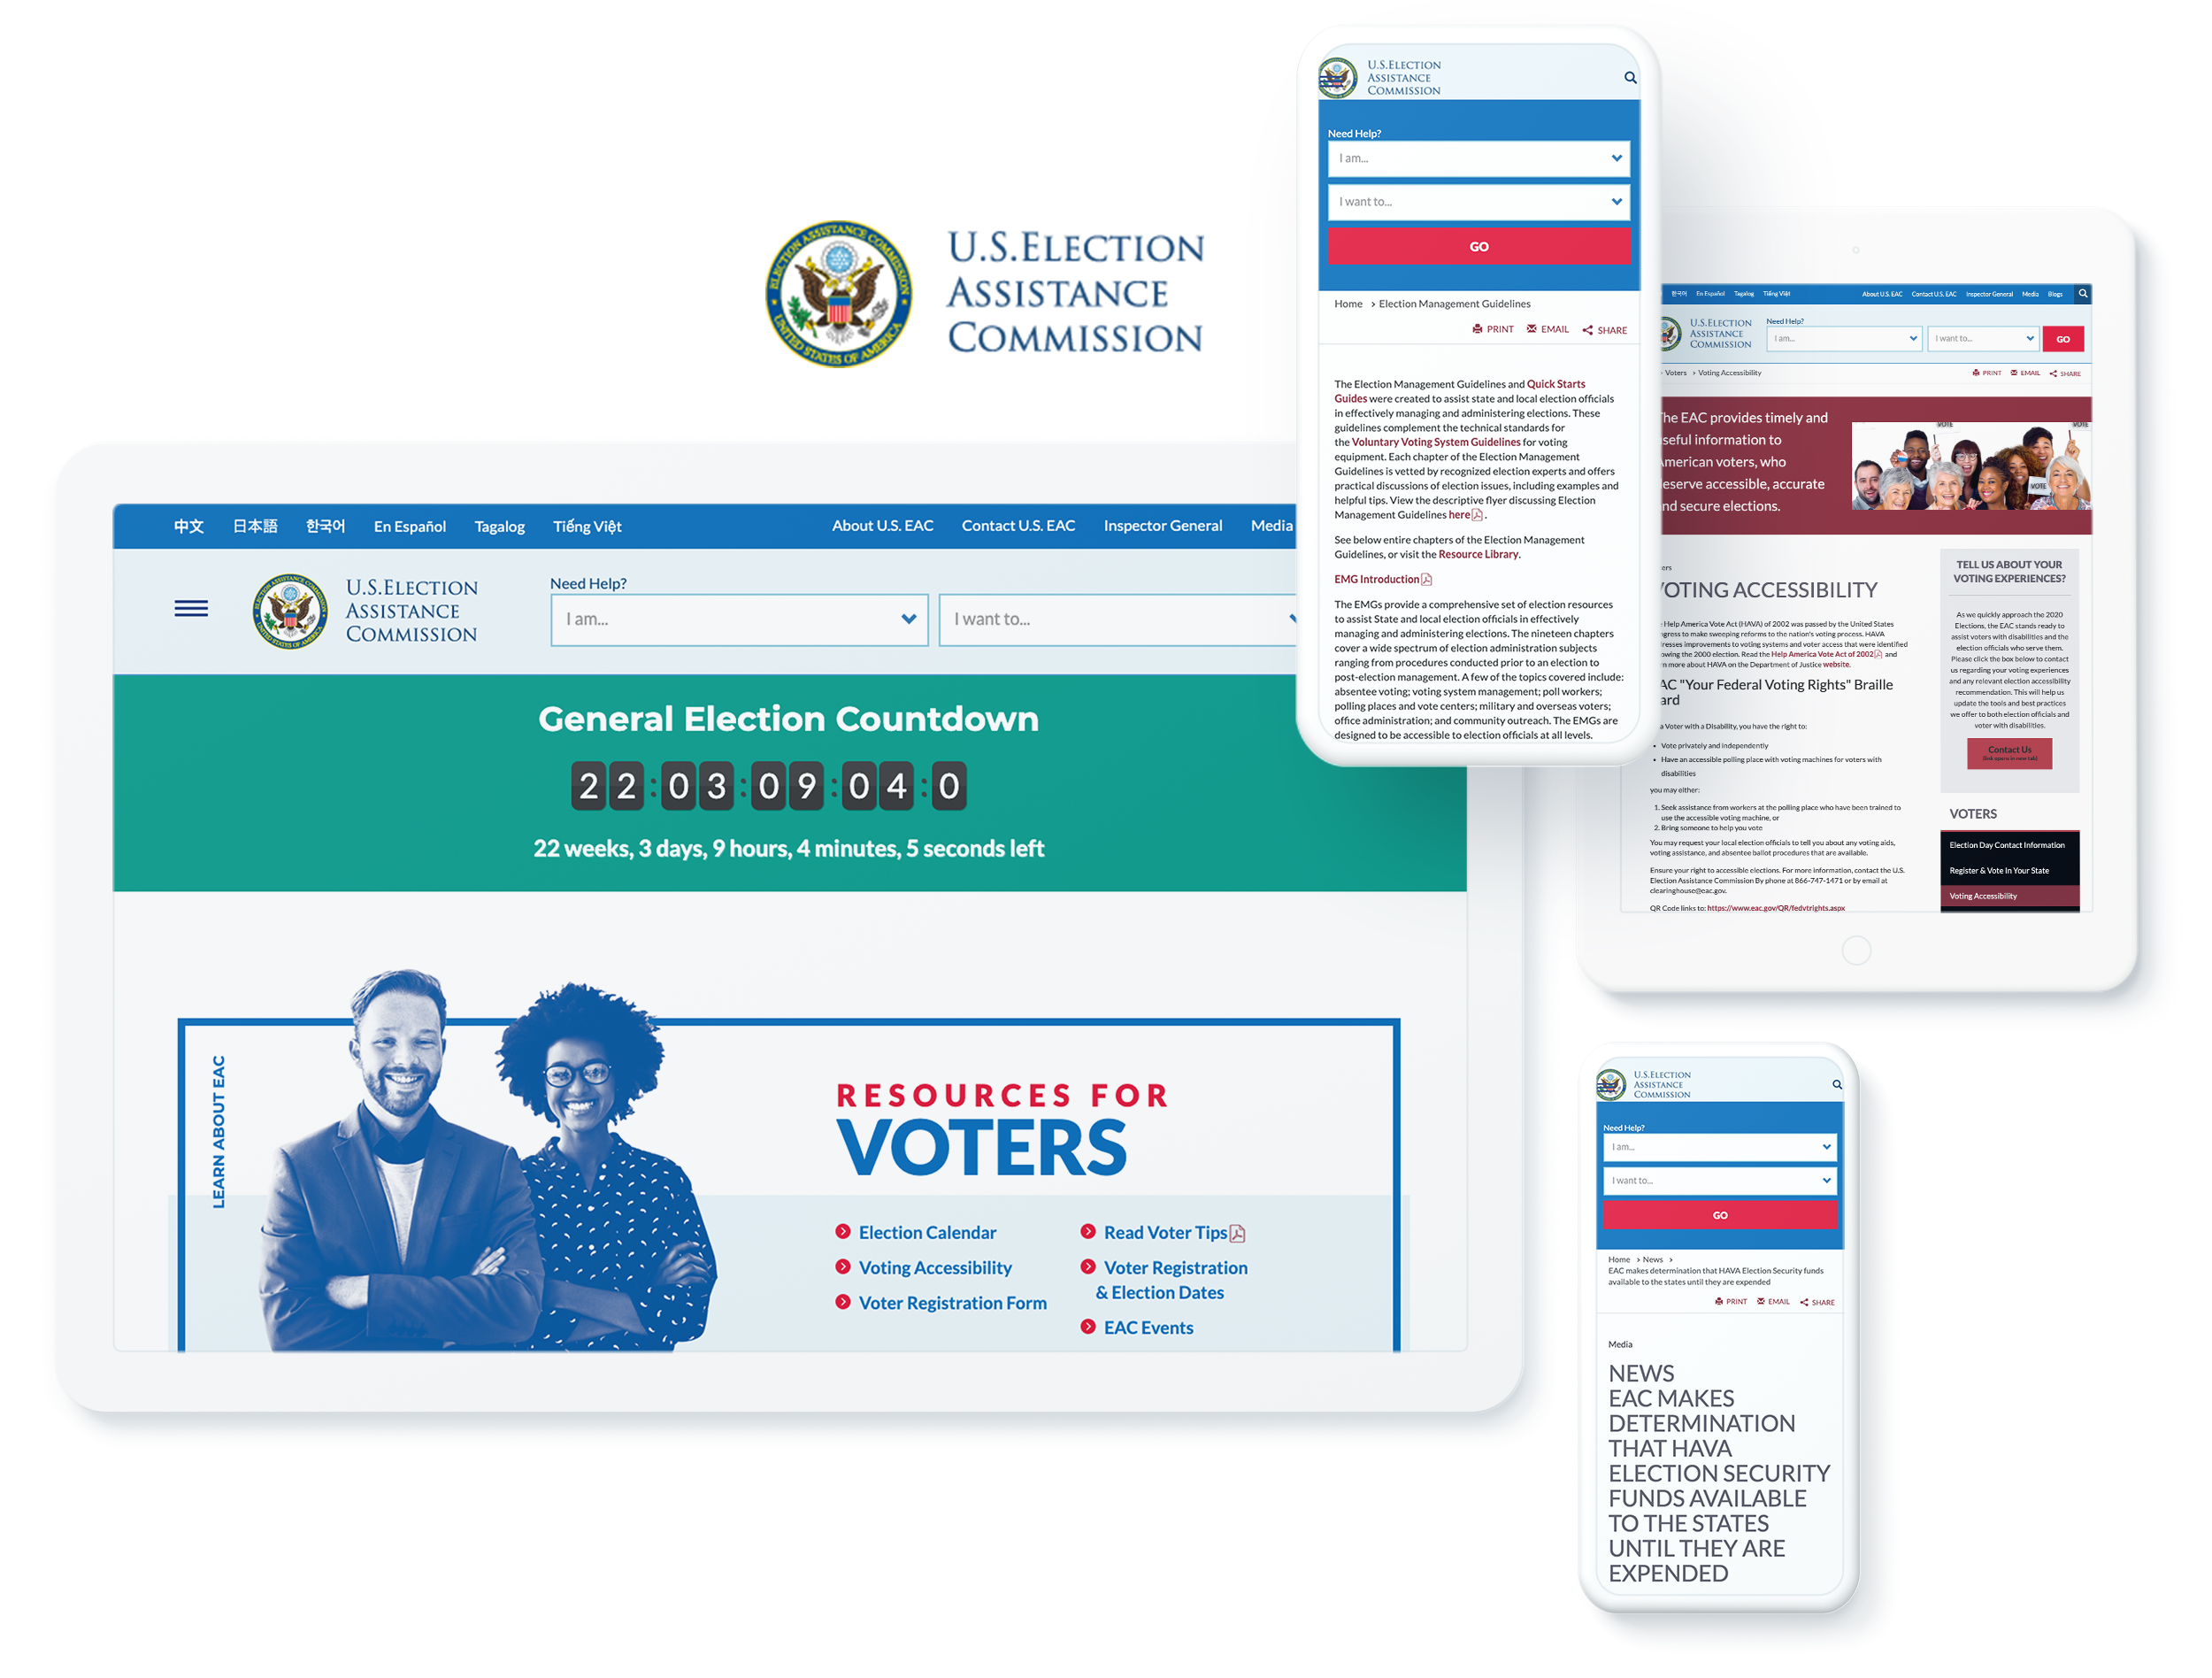 US ELECTION ASSISTANCE SCREENS